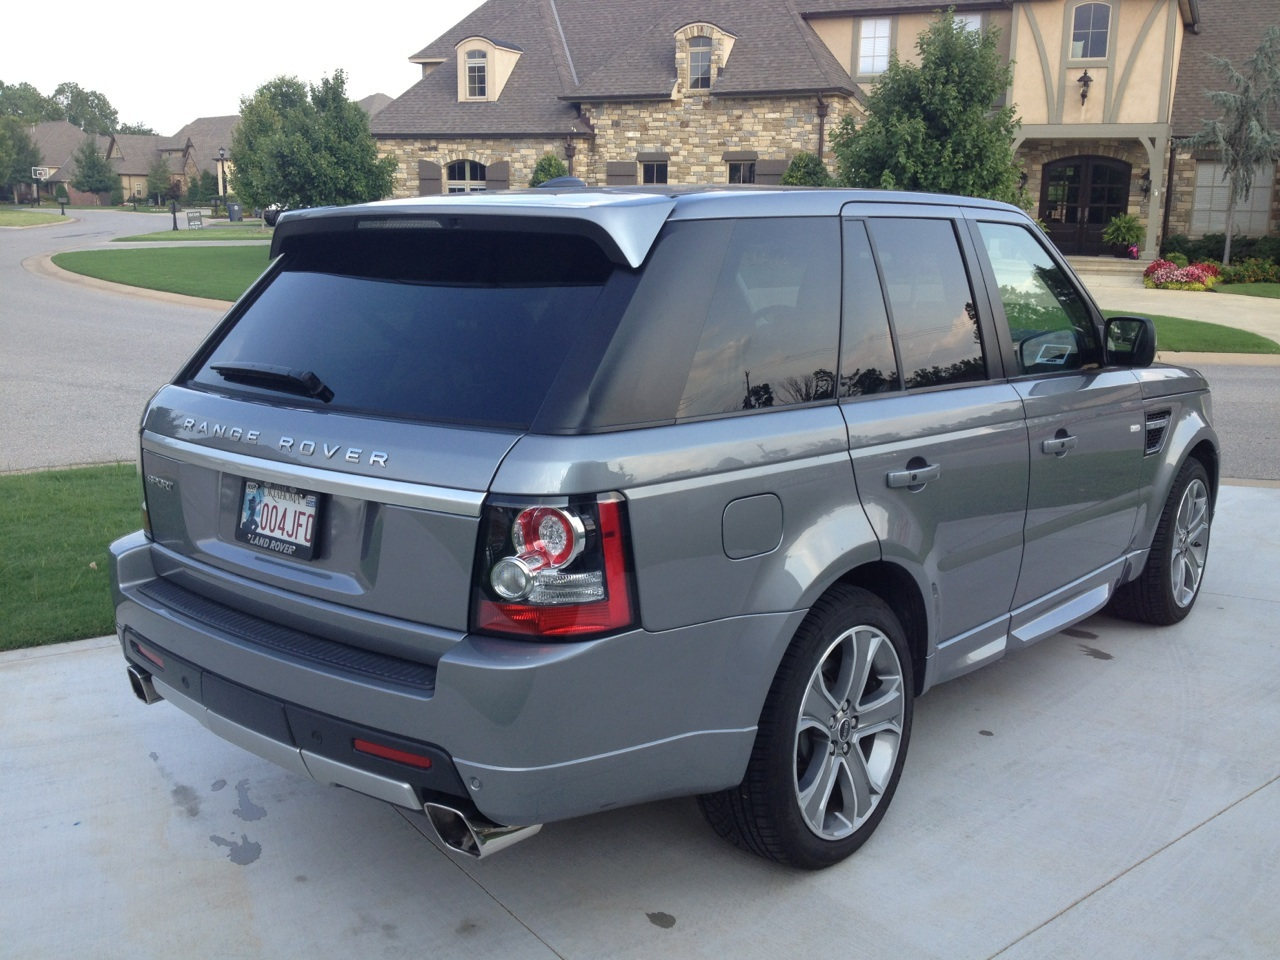 2012 land rover range rover sport pictures cargurus. Black Bedroom Furniture Sets. Home Design Ideas